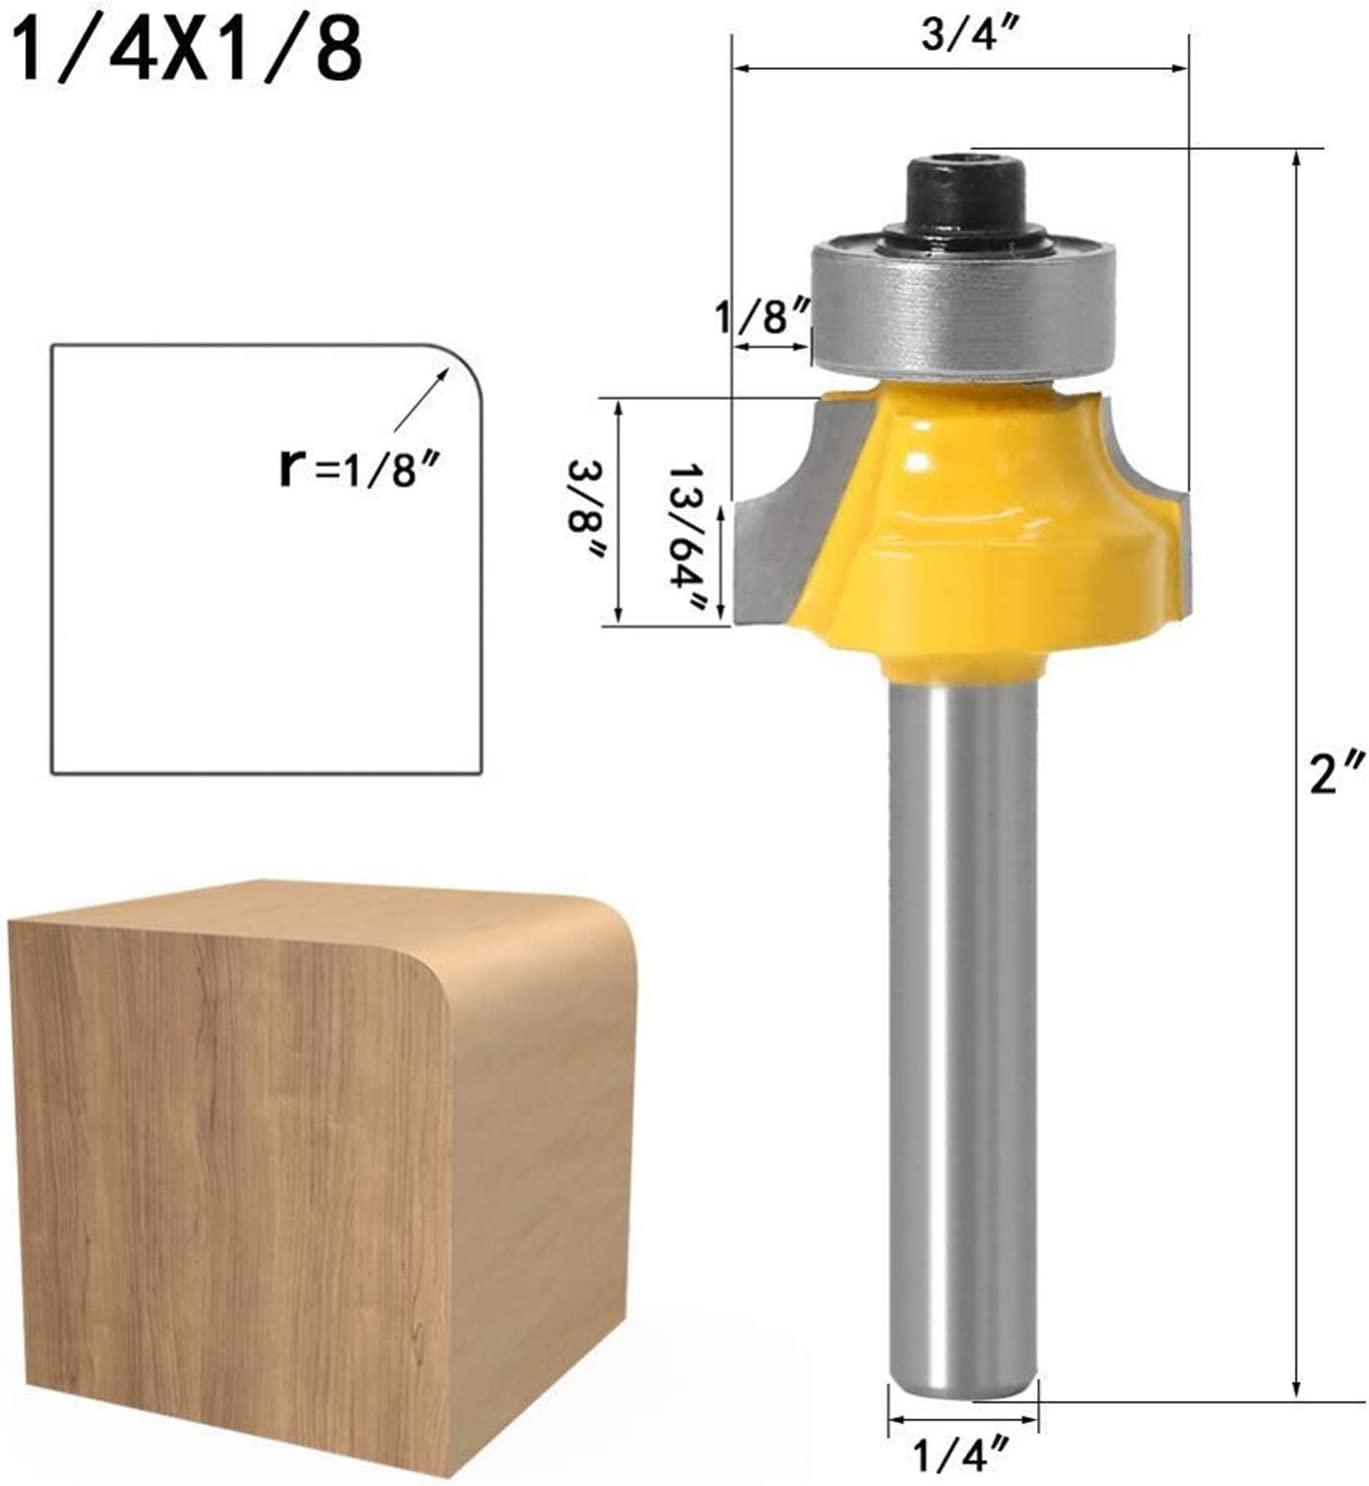 Use Safety Reliable Cutting Edge Length : 6.35XR6.35 1pc Zkenyao-Router Bit 1//4 Shank Round Over Router Bit with Bearing for Woodworking Tool Tungsten Carbide Milling Cutter